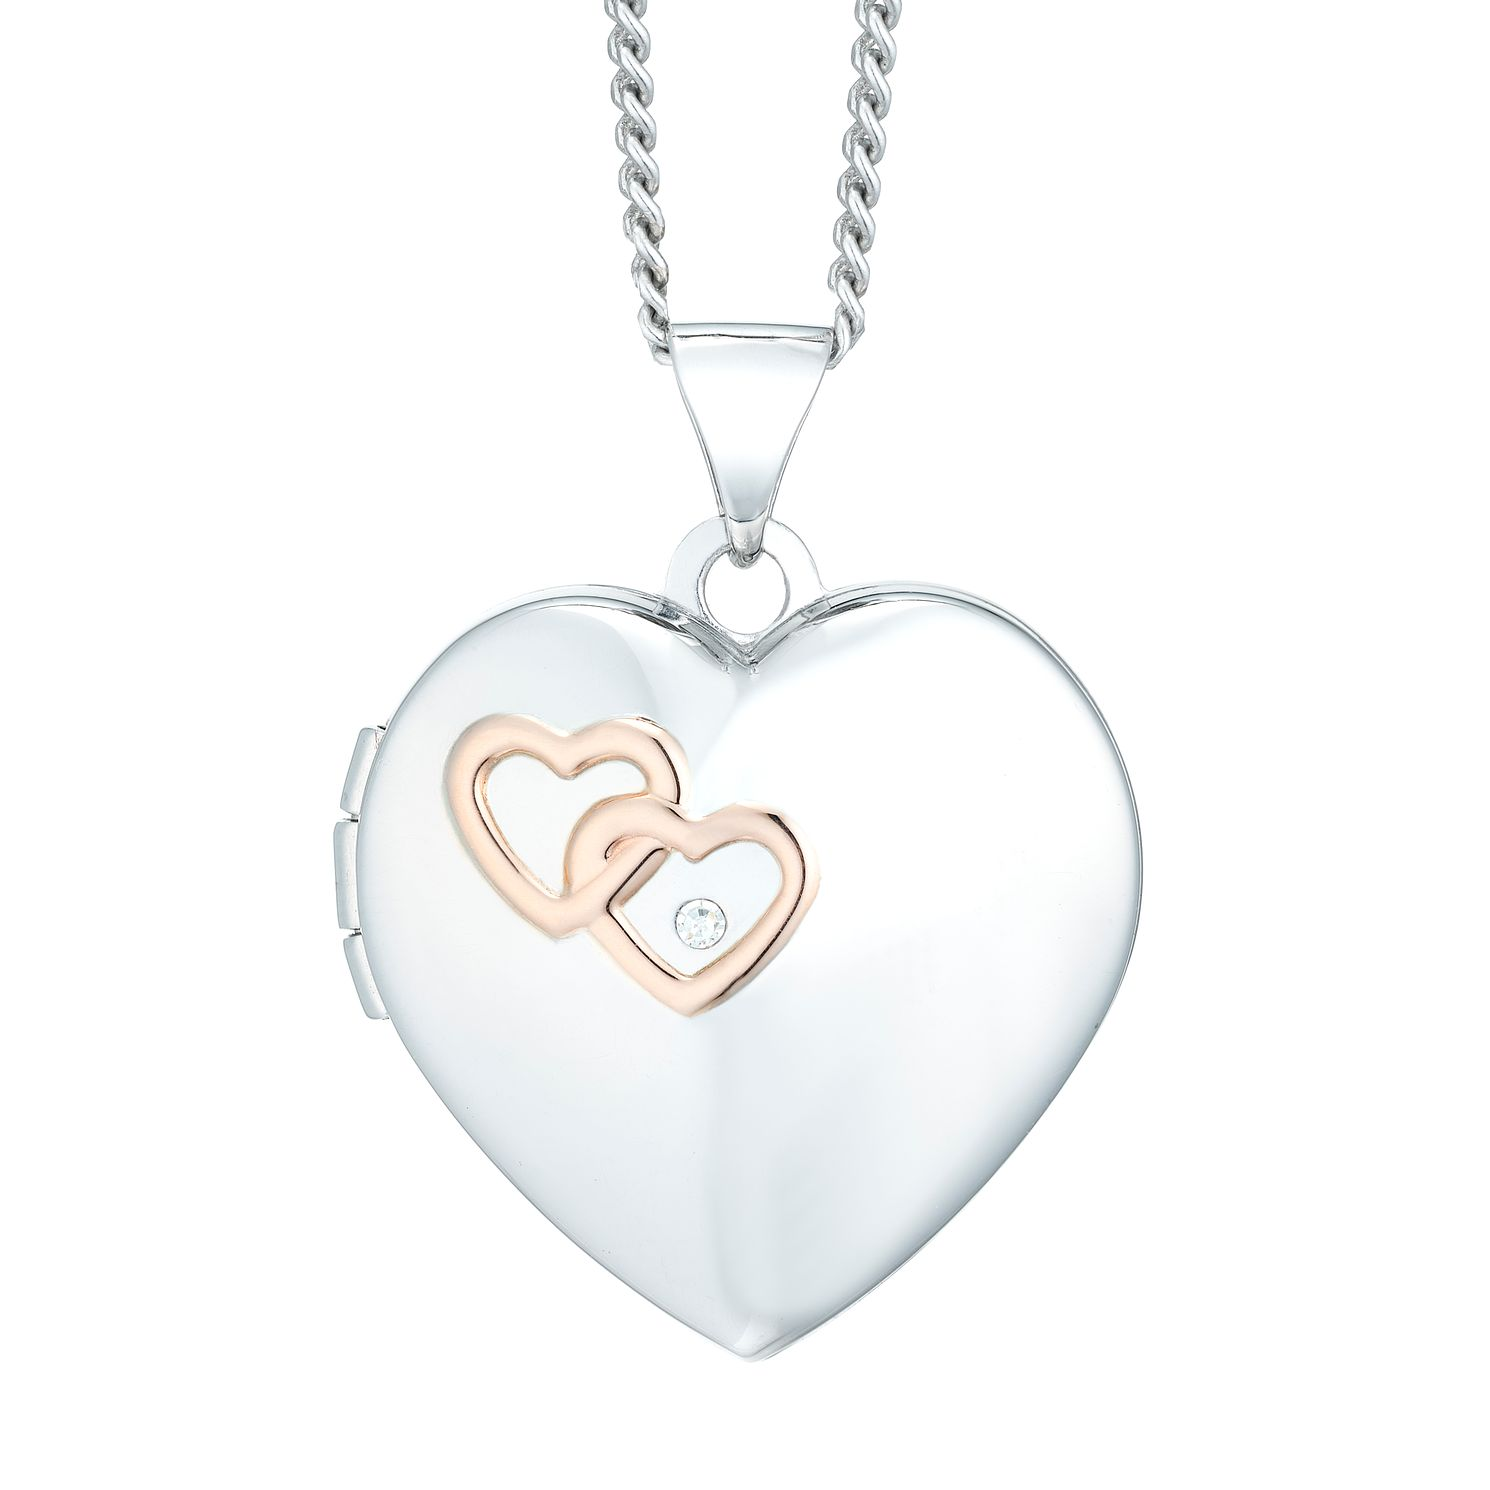 pendant locket small necklace inch heart si bling polished lockets smooth silver classic sterling jewelry